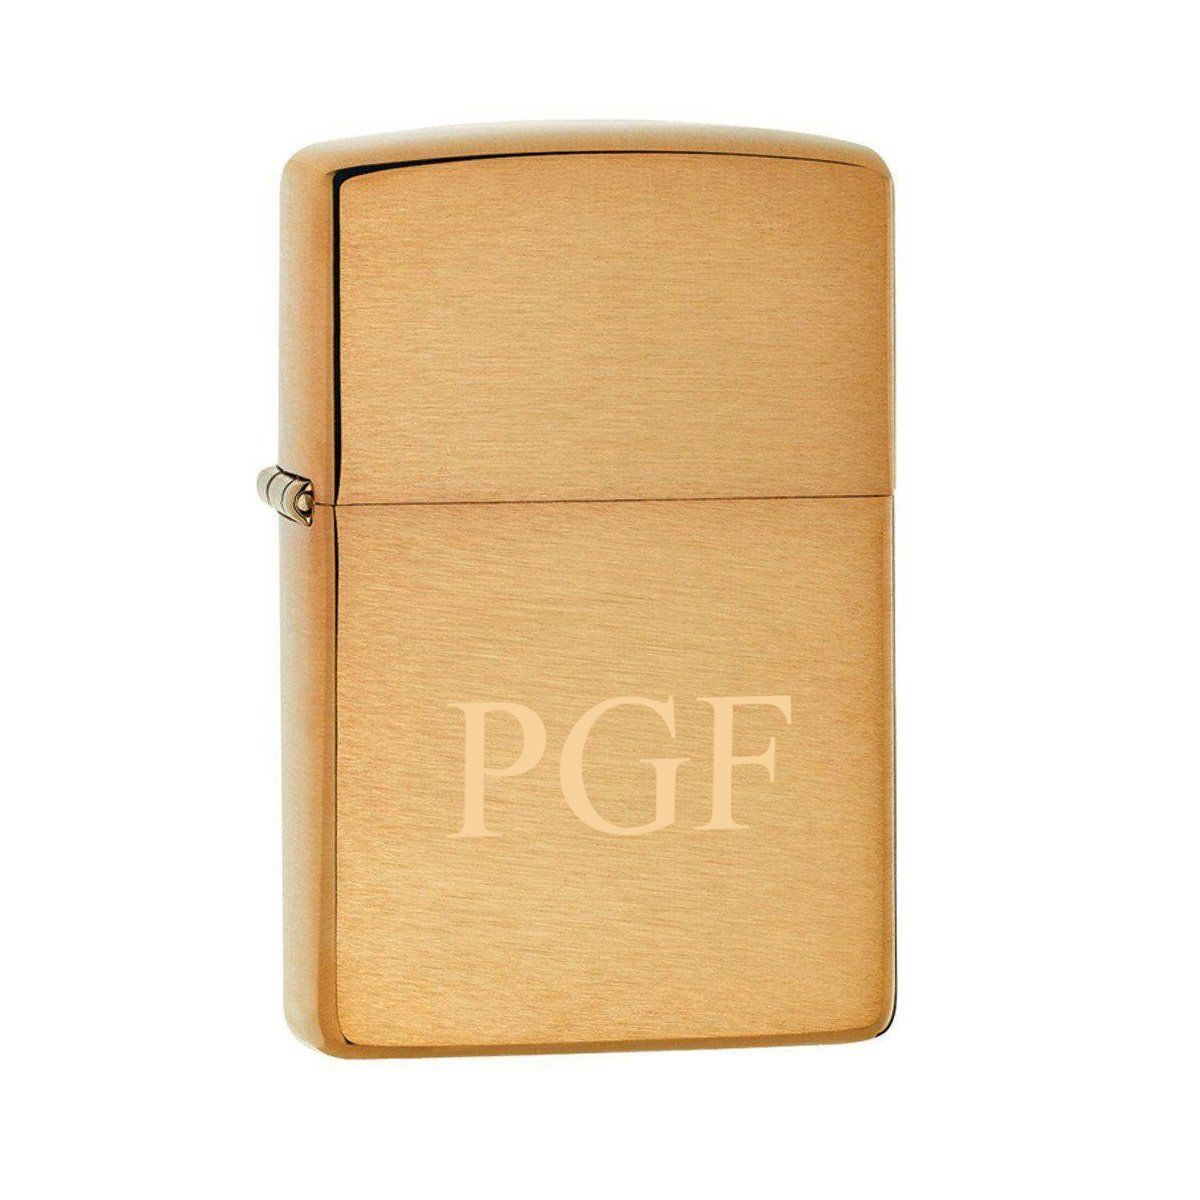 Personalized-Brushed-Brass-Zippo-Lighter